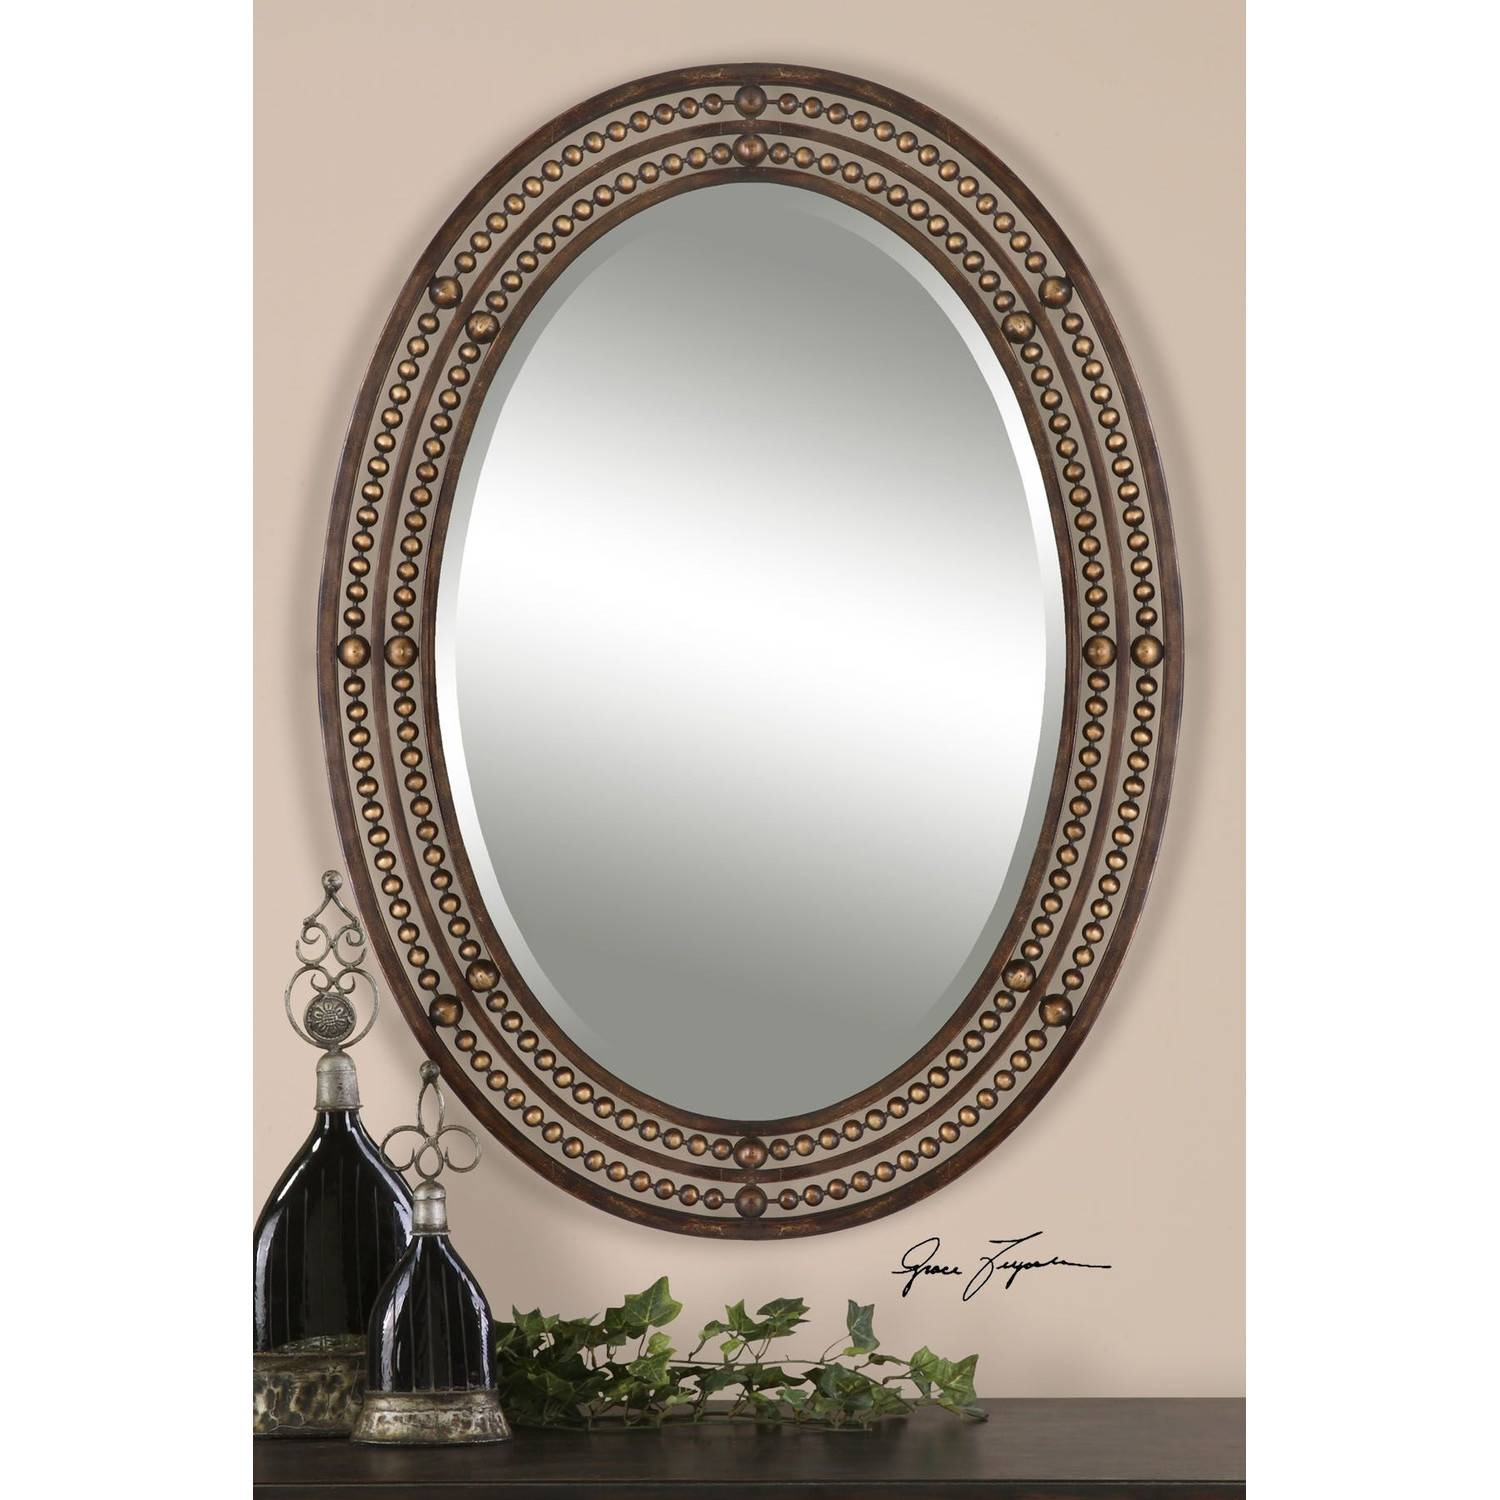 Bathroom Ideas: Great Oval Bathroom Mirrors For The Bathroom With Regard To Oval Mirrors For Walls (View 9 of 25)